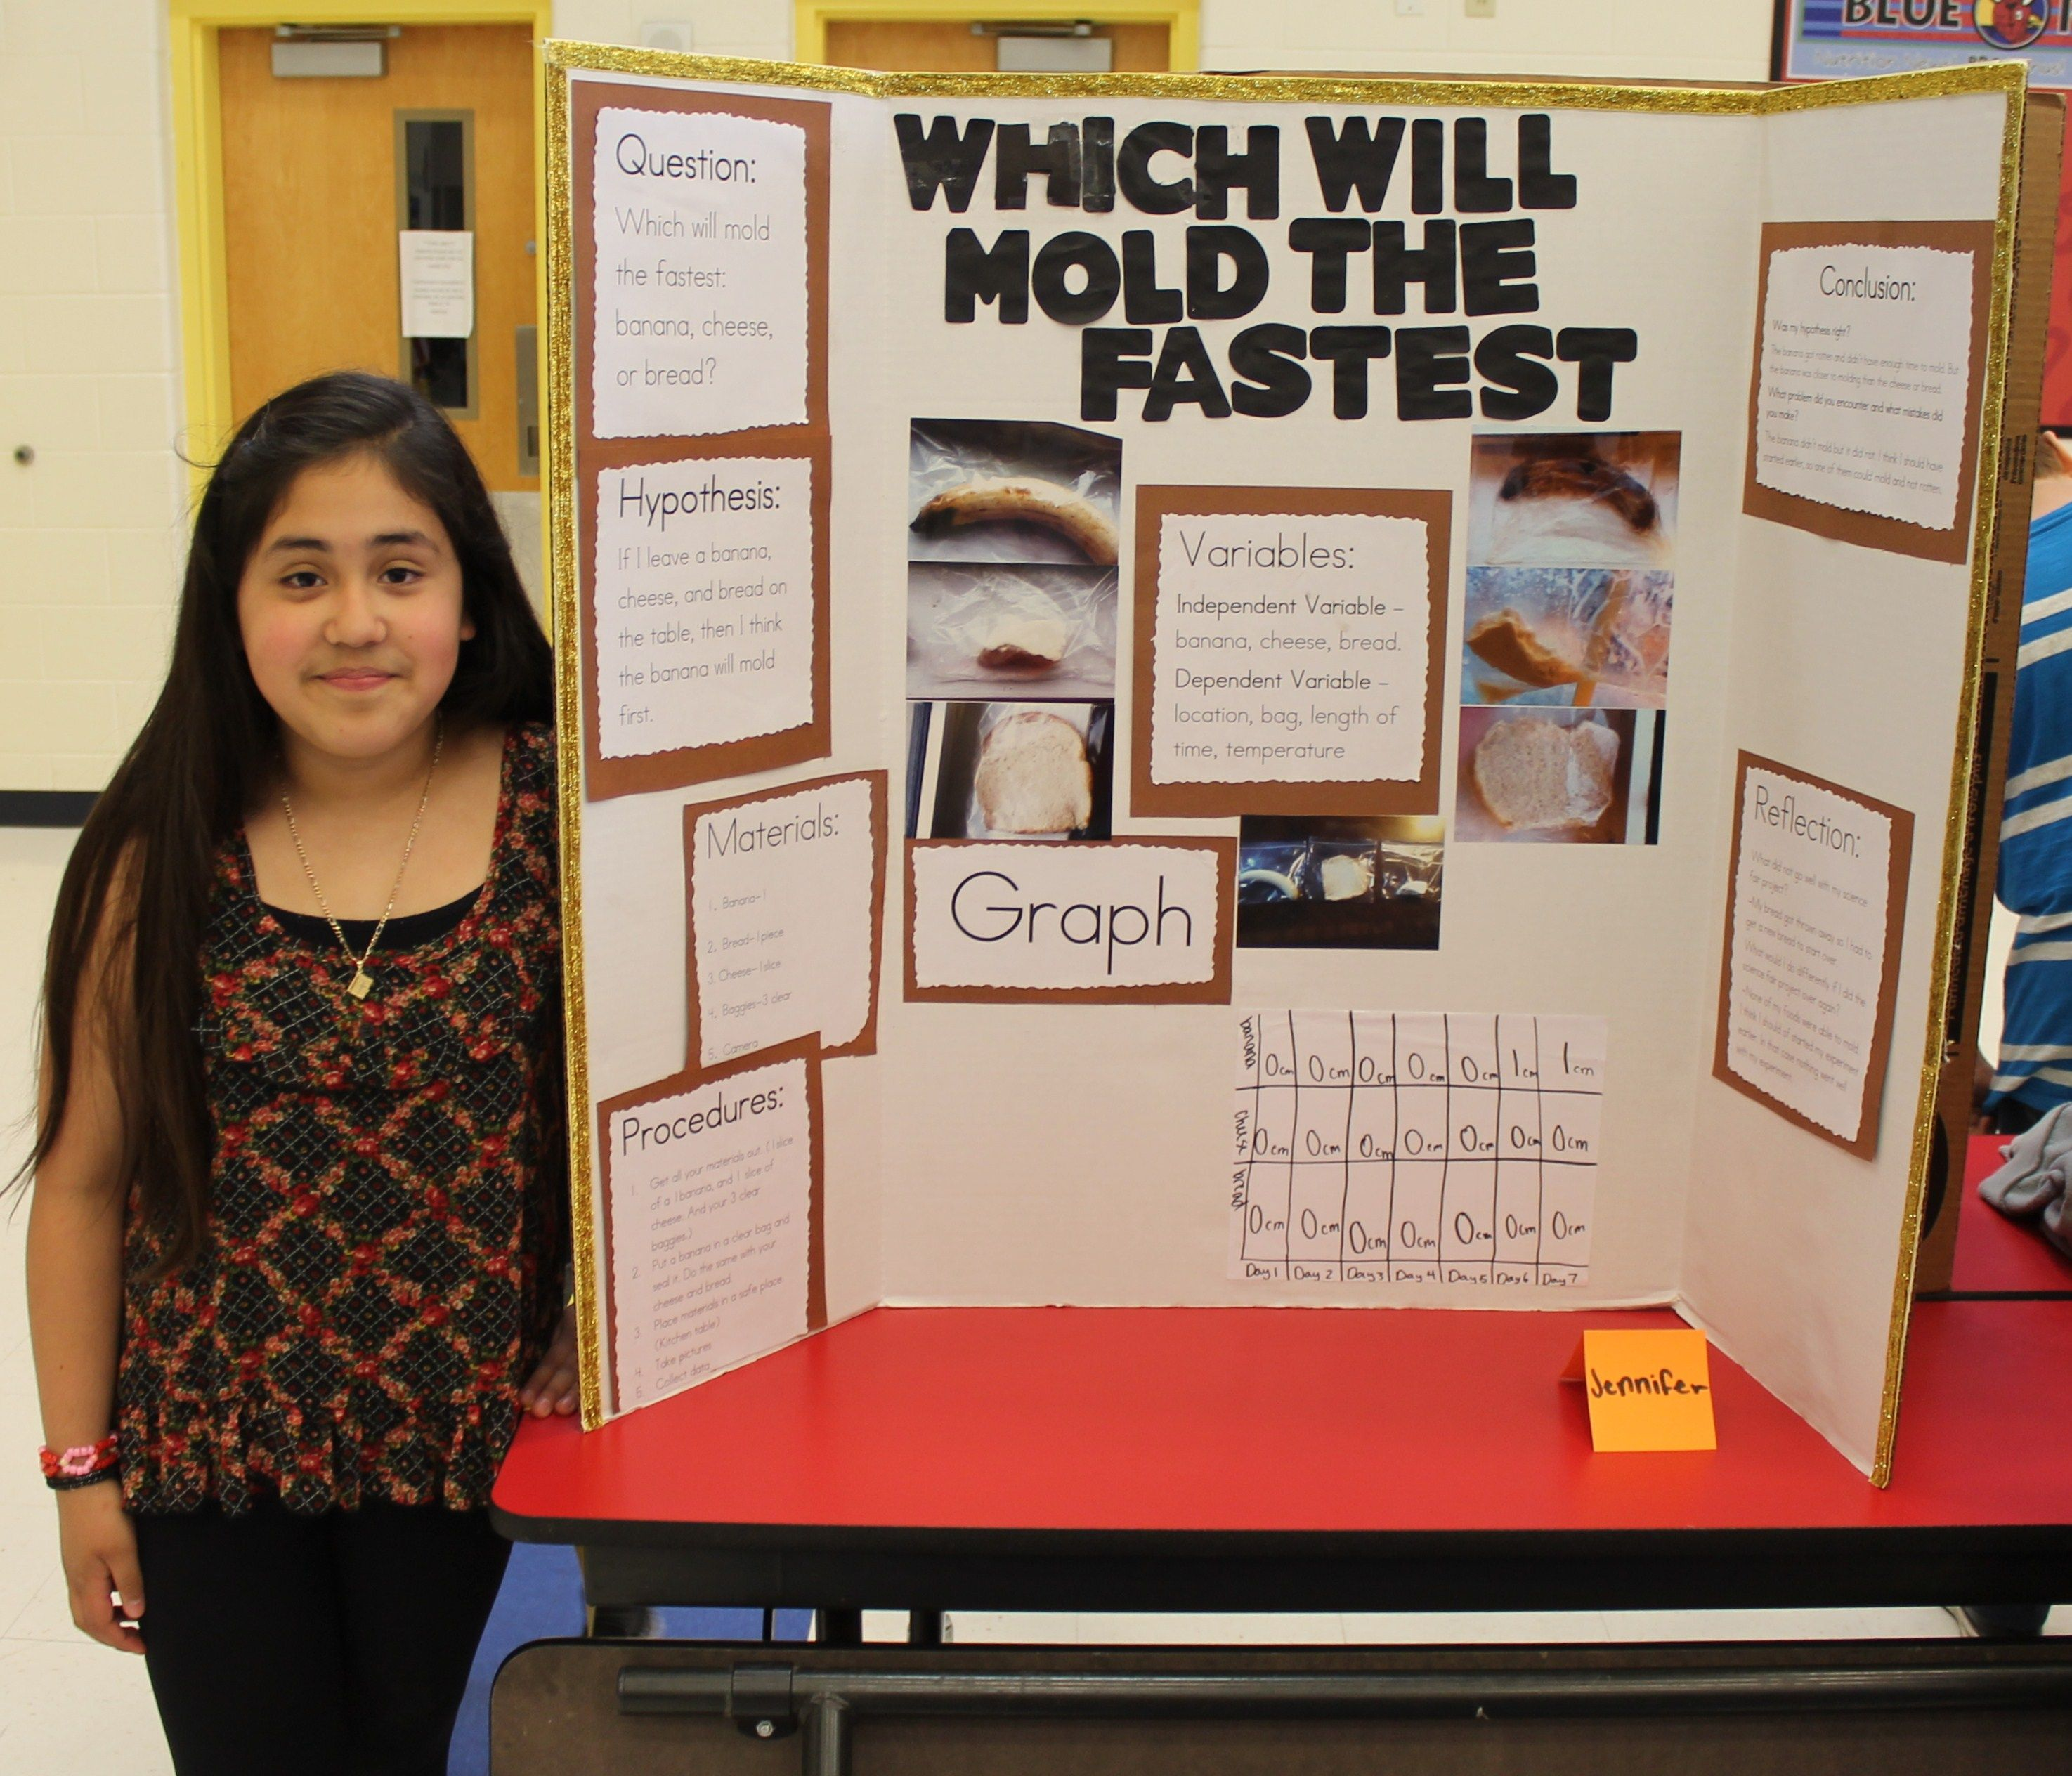 easy science fair projects for 3rd grade idea - google search